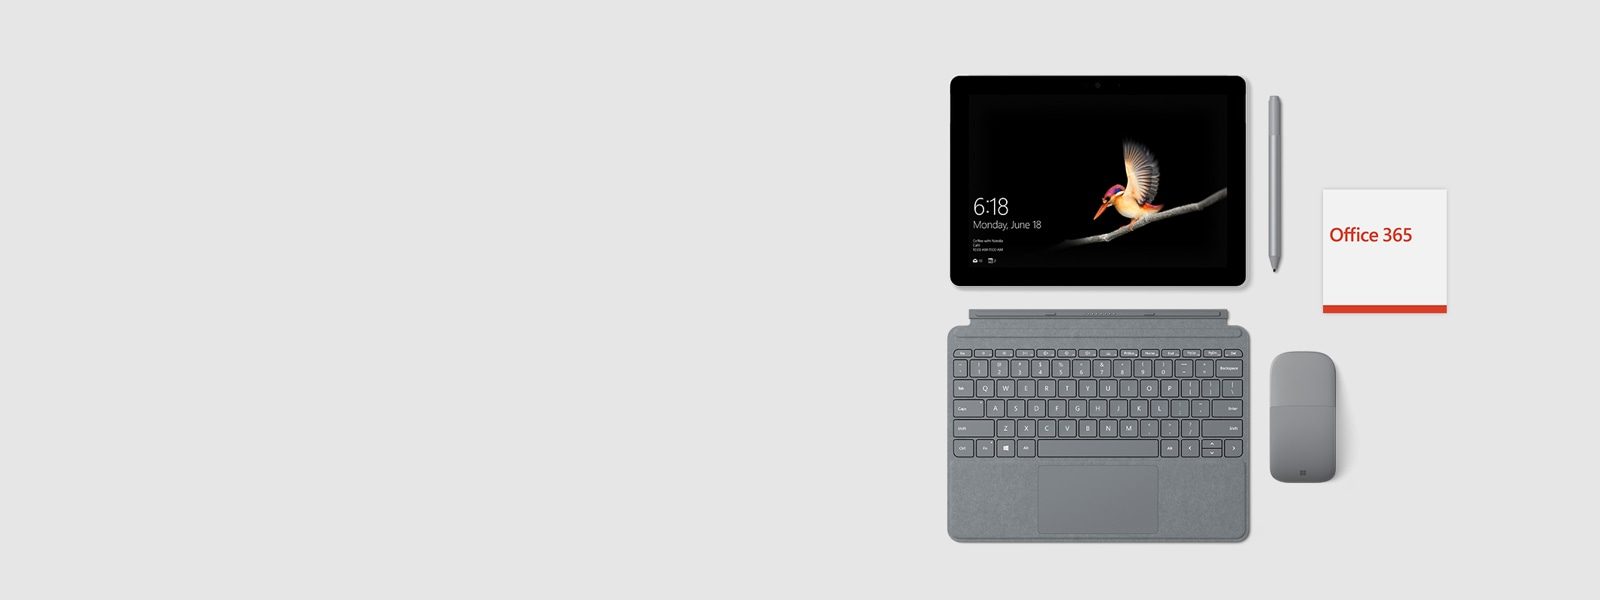 Surface Go +Type Cover + Office 365 + Surface Pen + Surface Arc Mouse